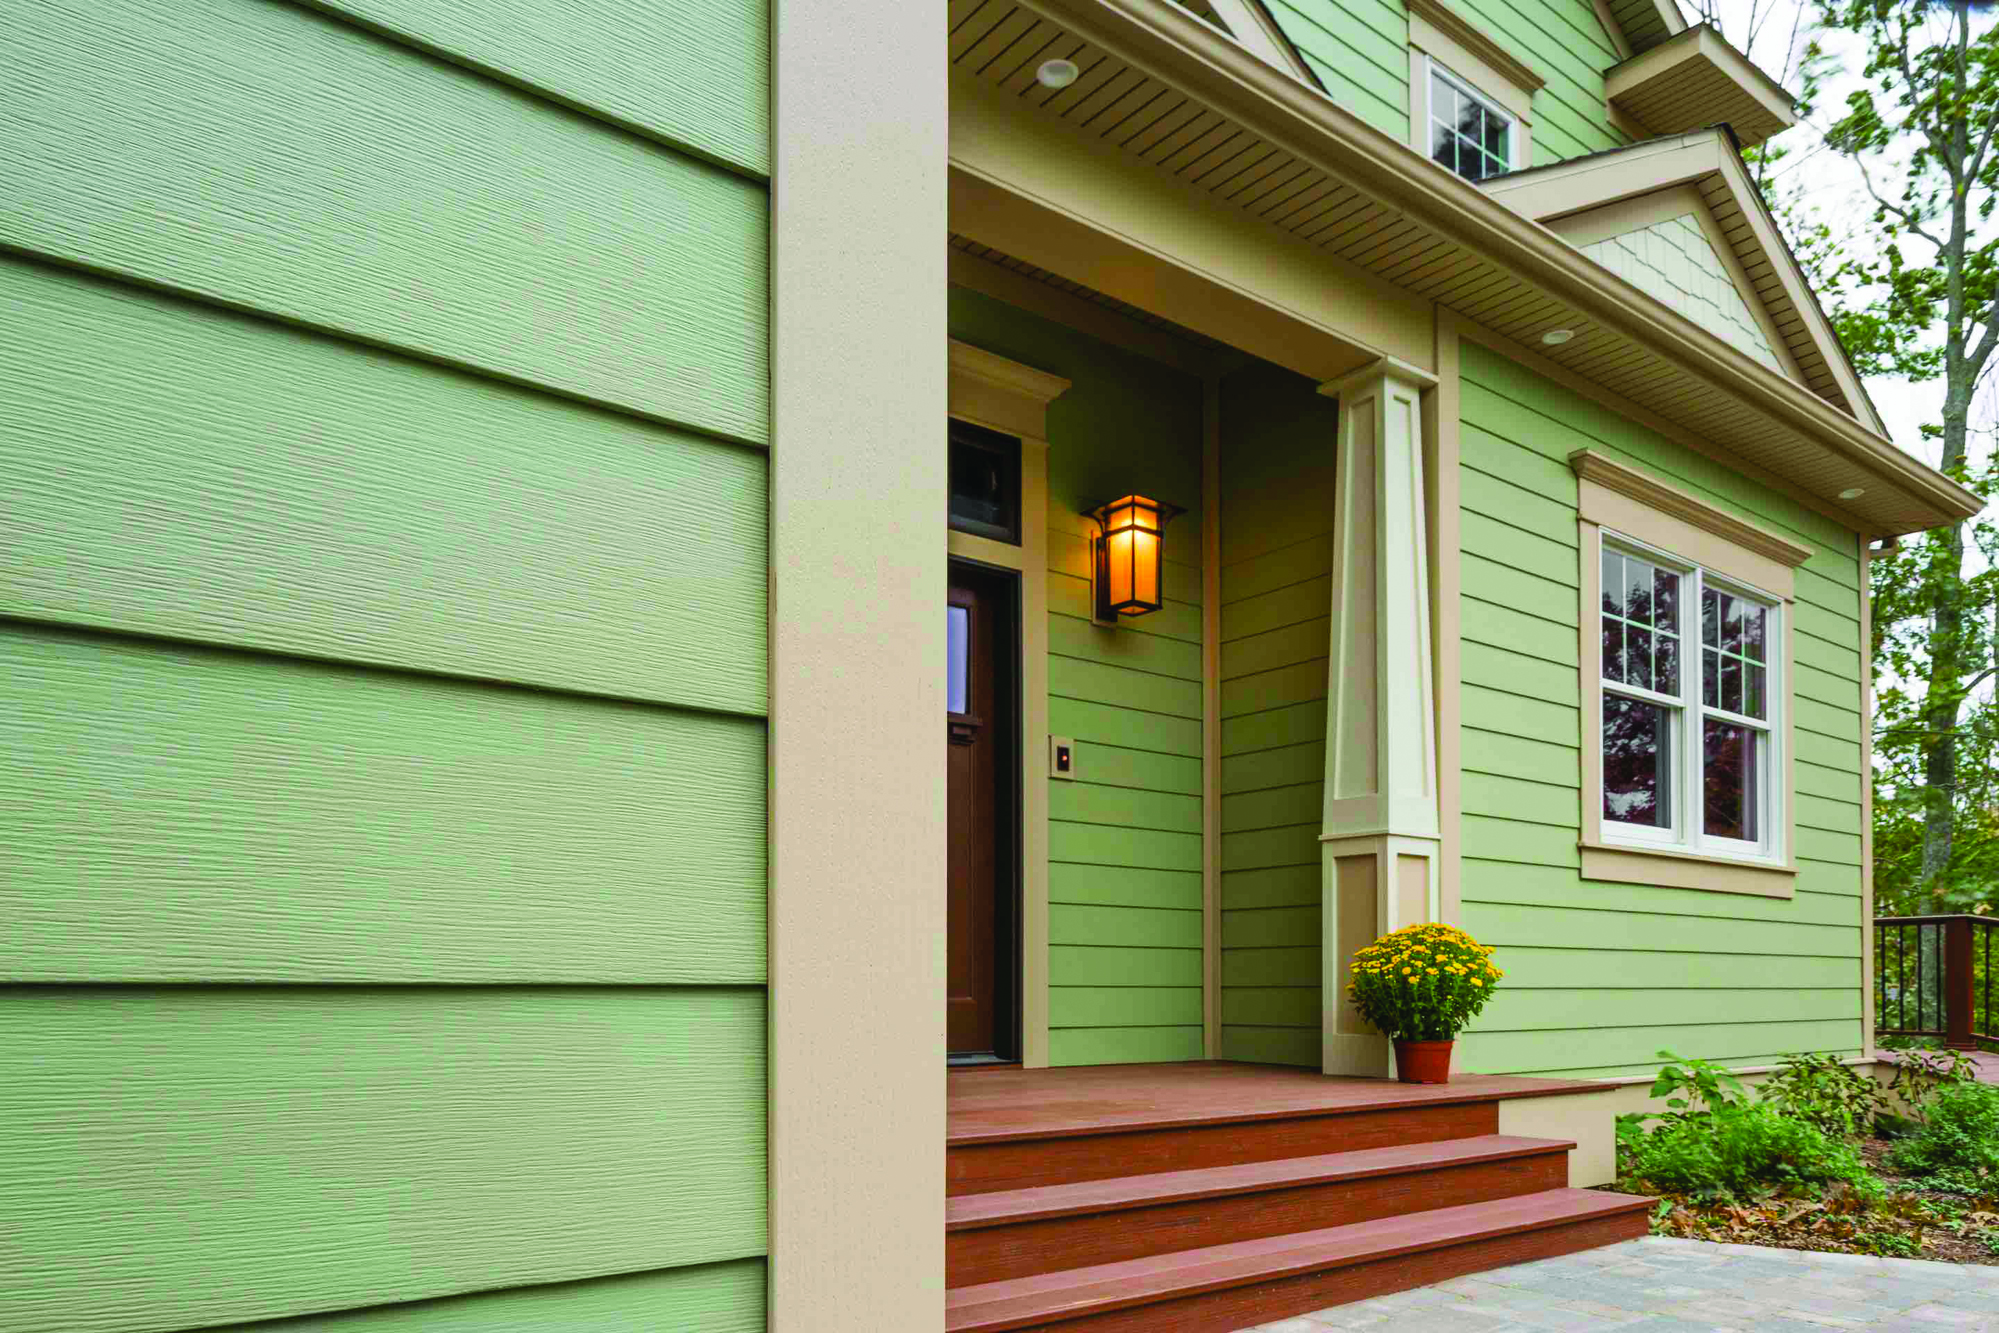 7 Popular Siding Materials To Consider: Pre-primed Engineered Siding